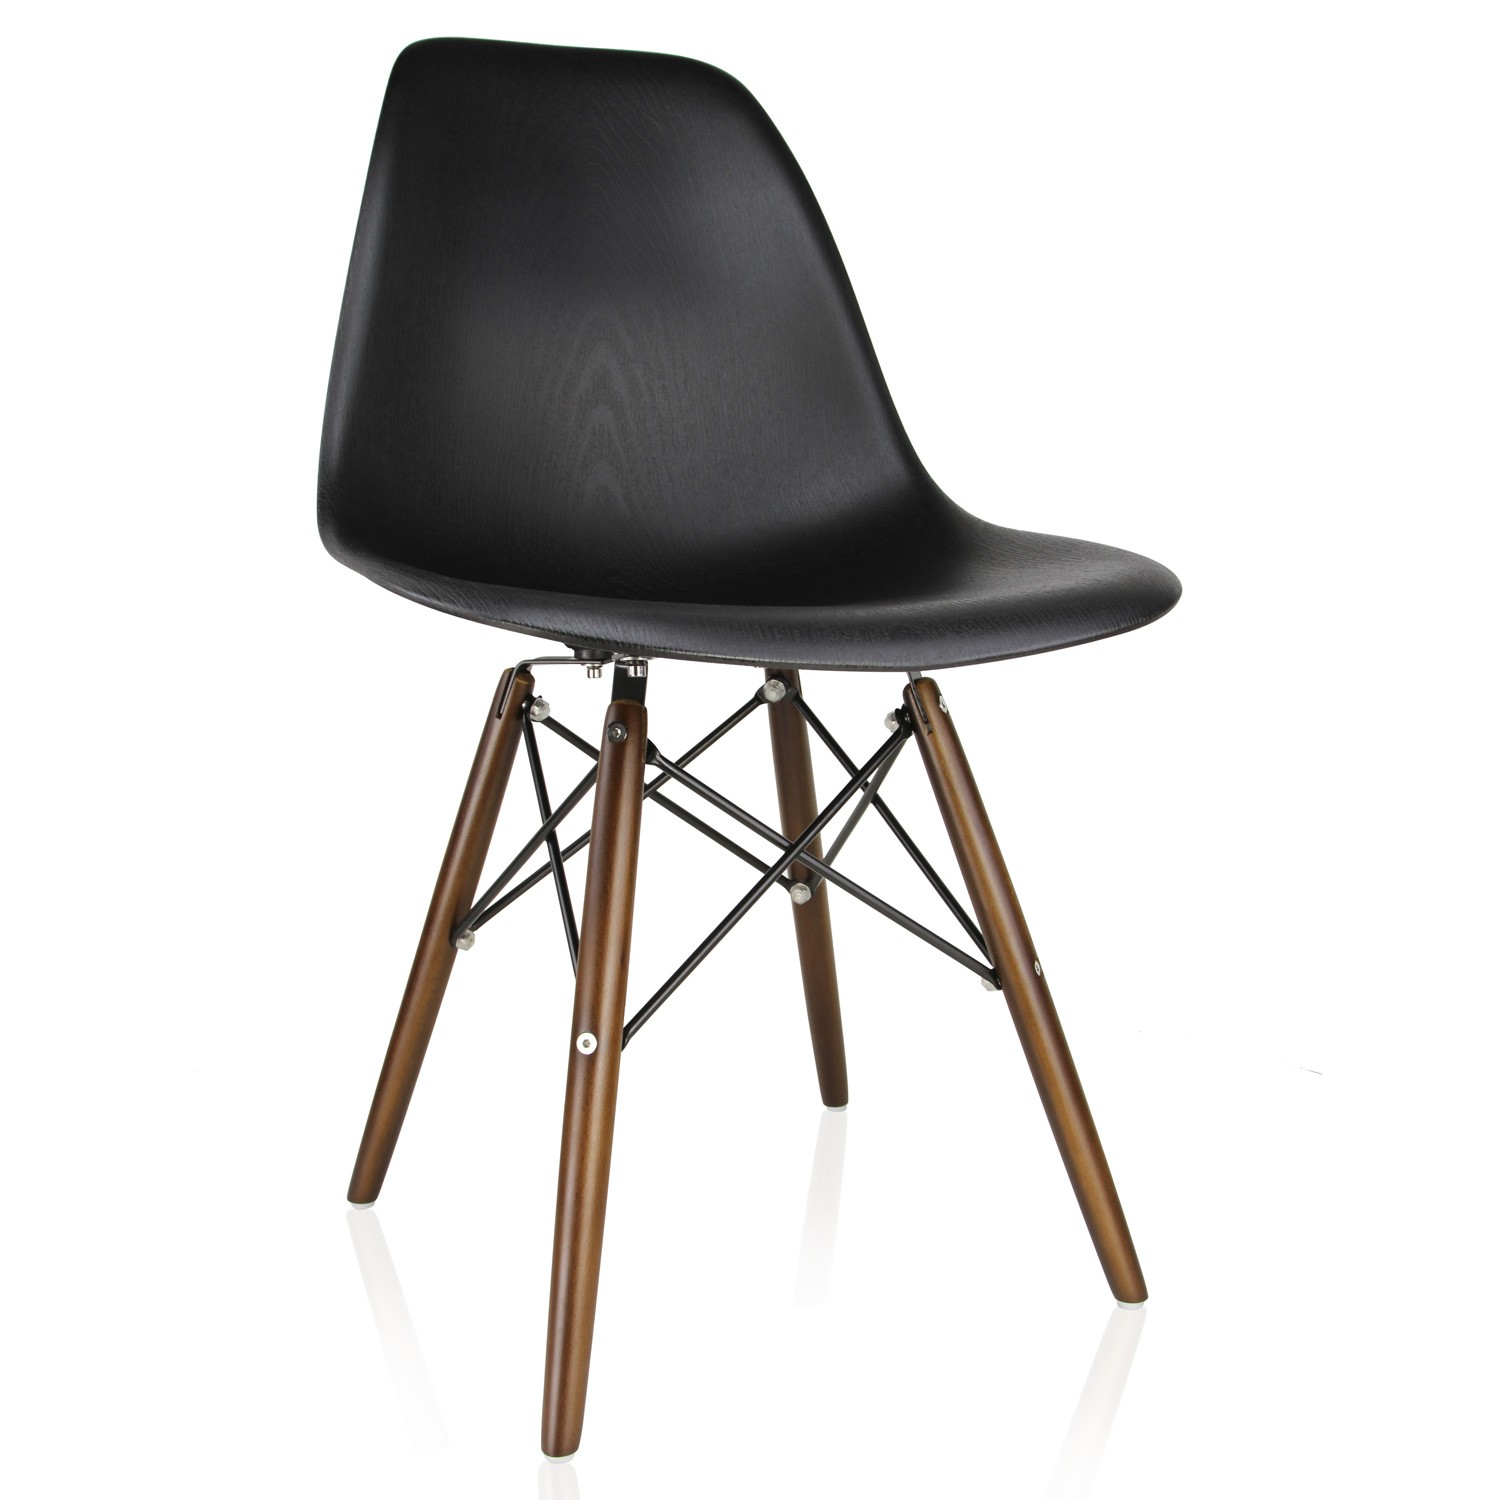 black plastic chair with wooden legs wire ikea nature series wood grain dsw molded dining side